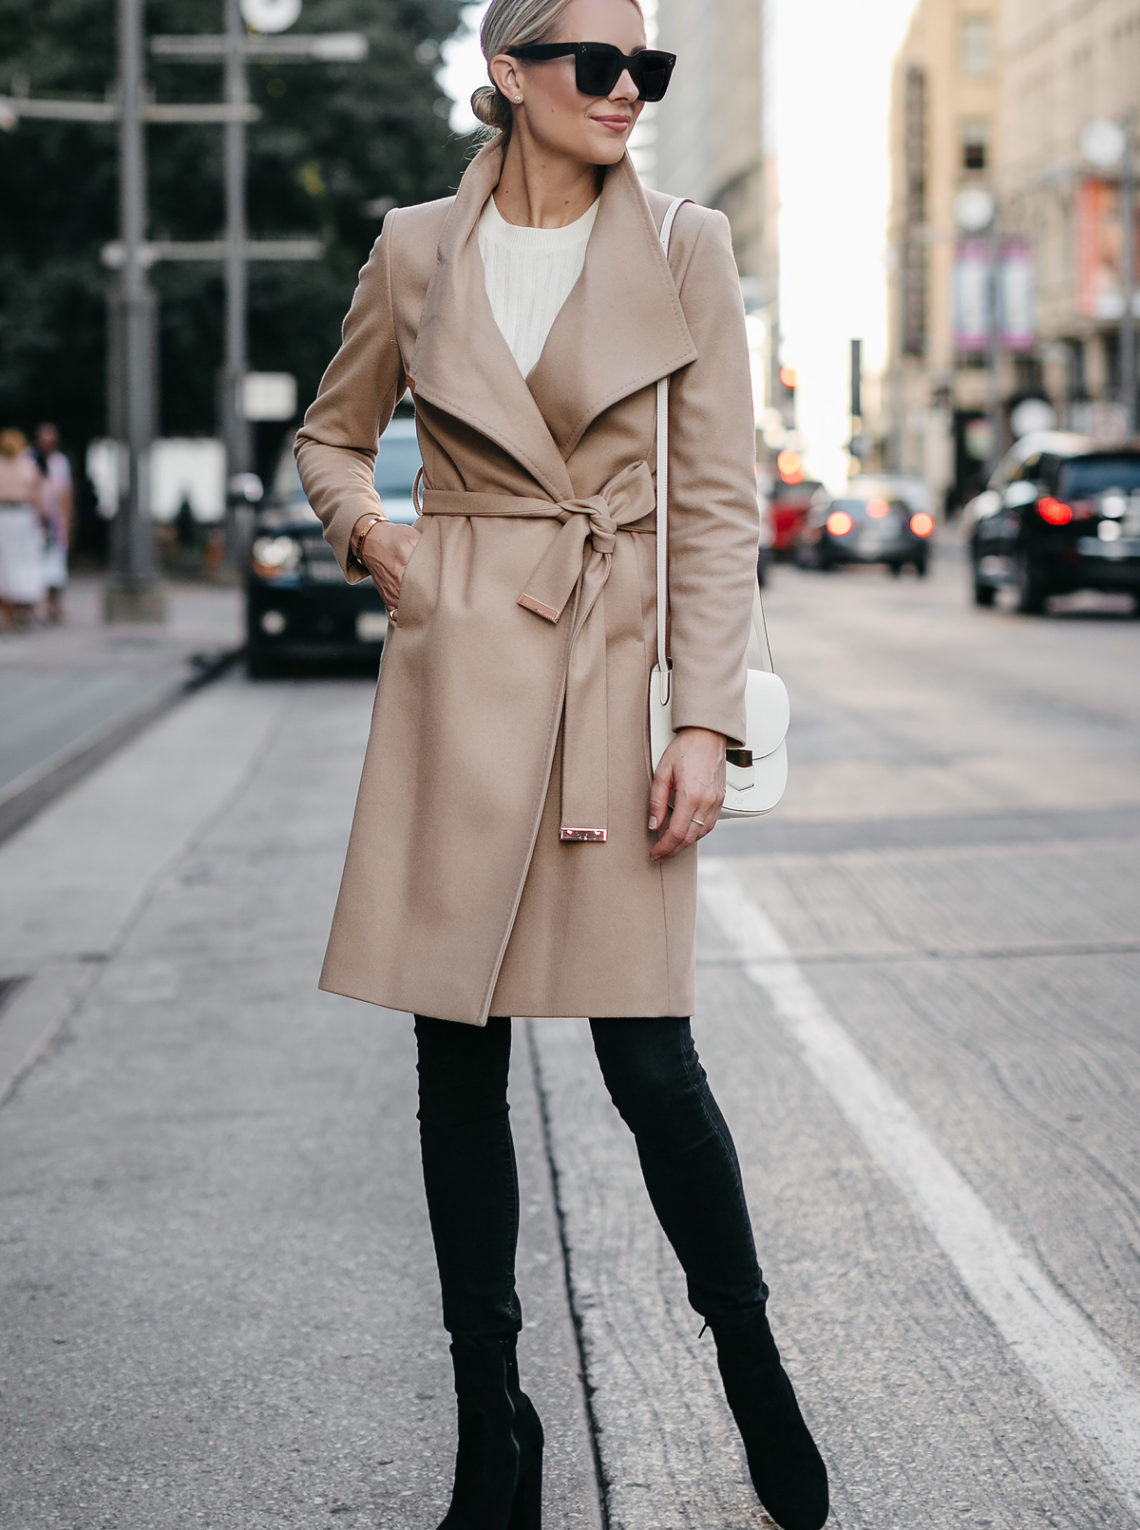 Blonde Woman Wearing Tan Wrap Coat White Sweater Black Skinny Jeans Black Booties Outfit Fashion Jackson Dallas Blogger Fashion Blogger Street Style